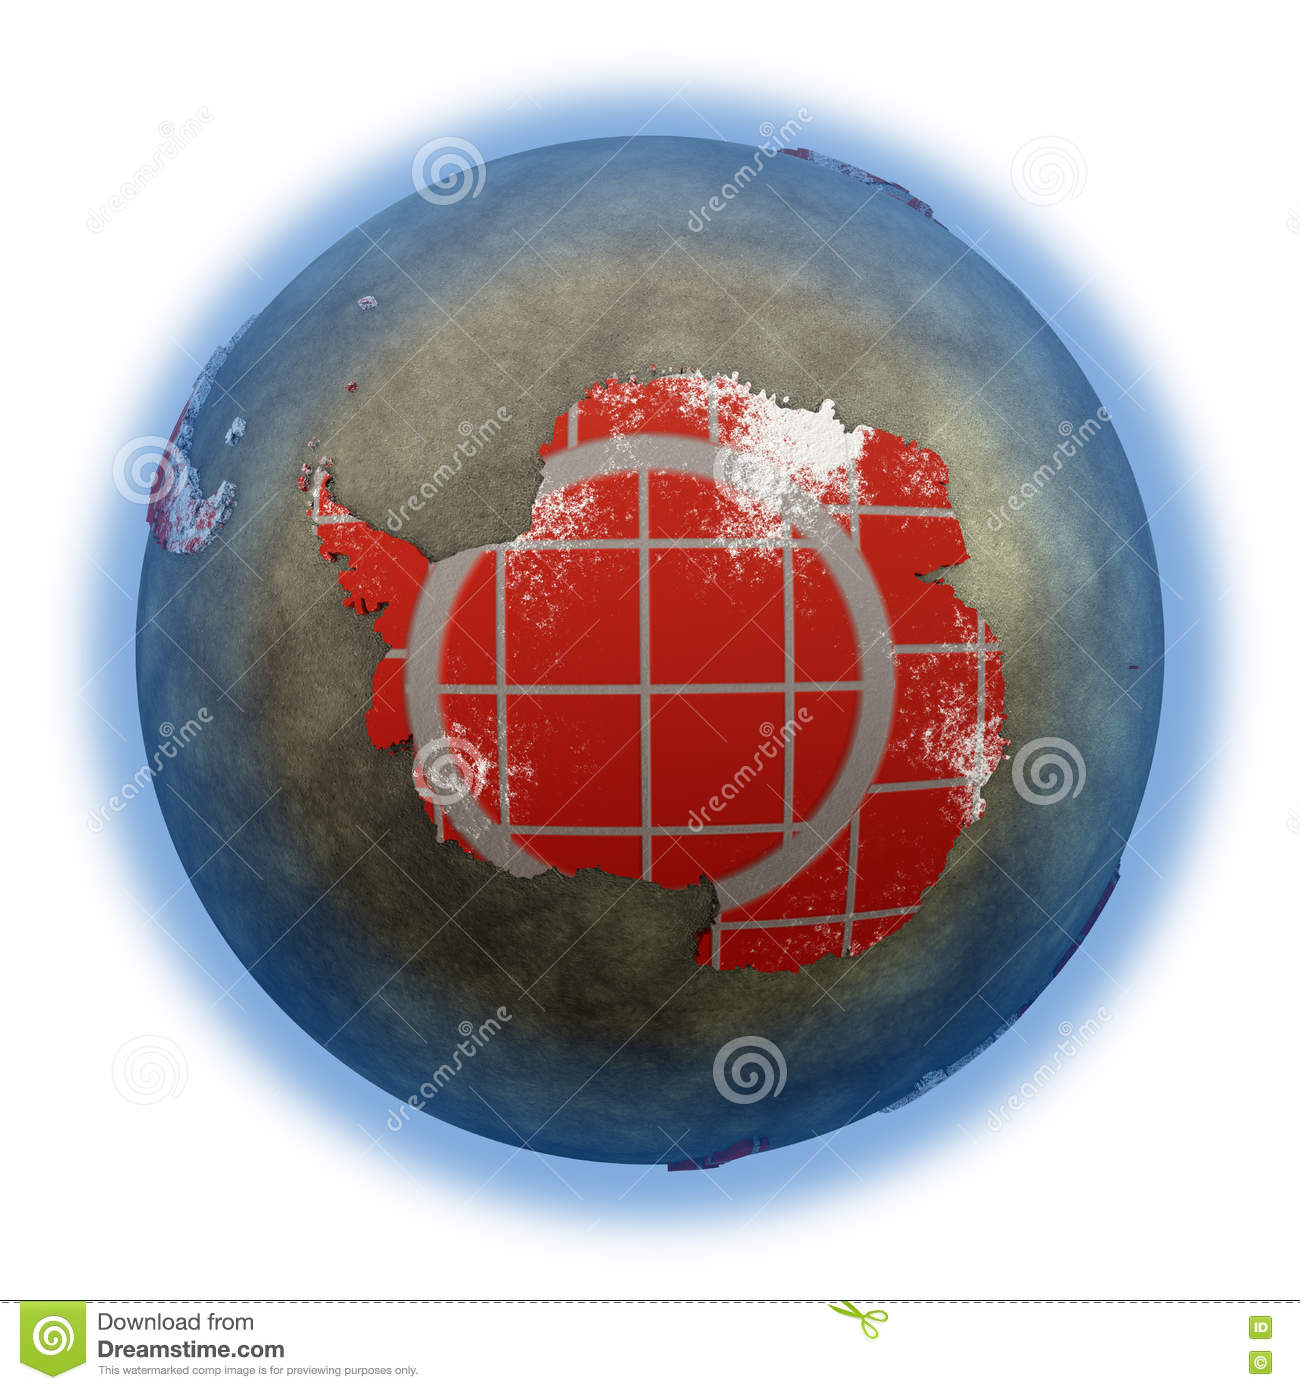 hight resolution of antarctica on brick wall model of planet earth with continents made of red bricks and oceans of wet concrete concept of global construction